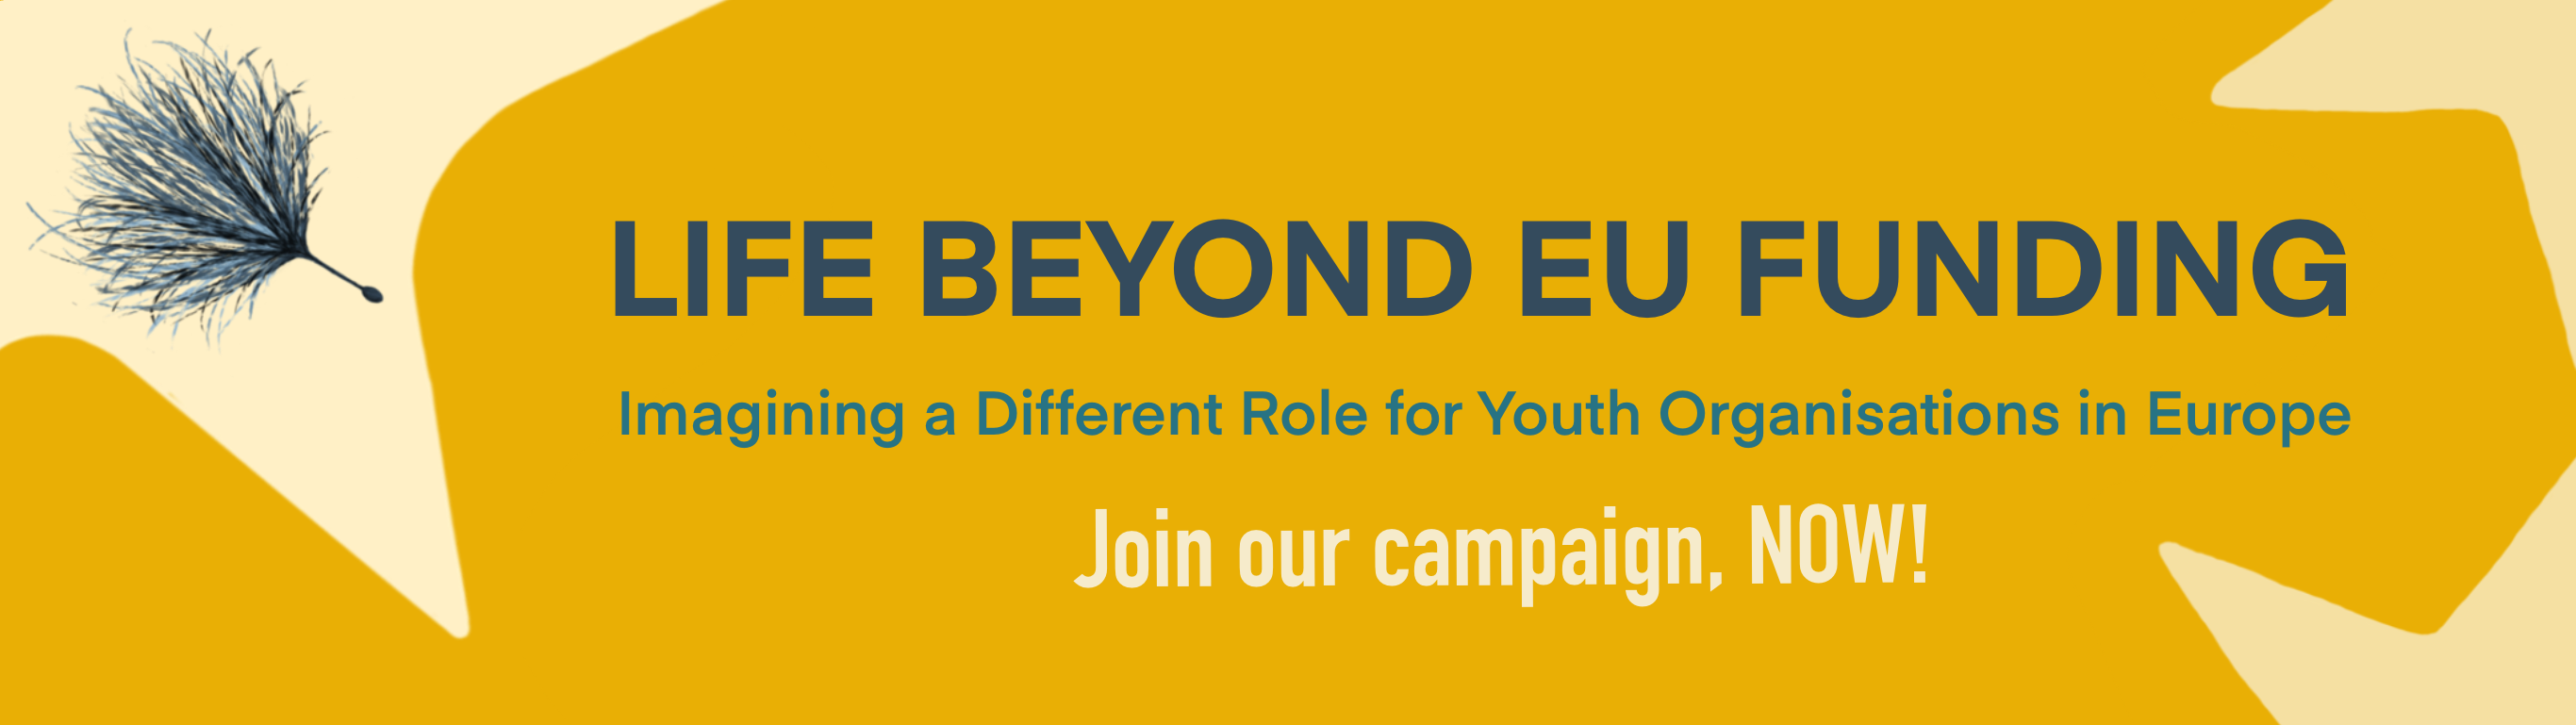 Life beyond EU Funding: Imagining a Different Role for Youth Organisations in Europe